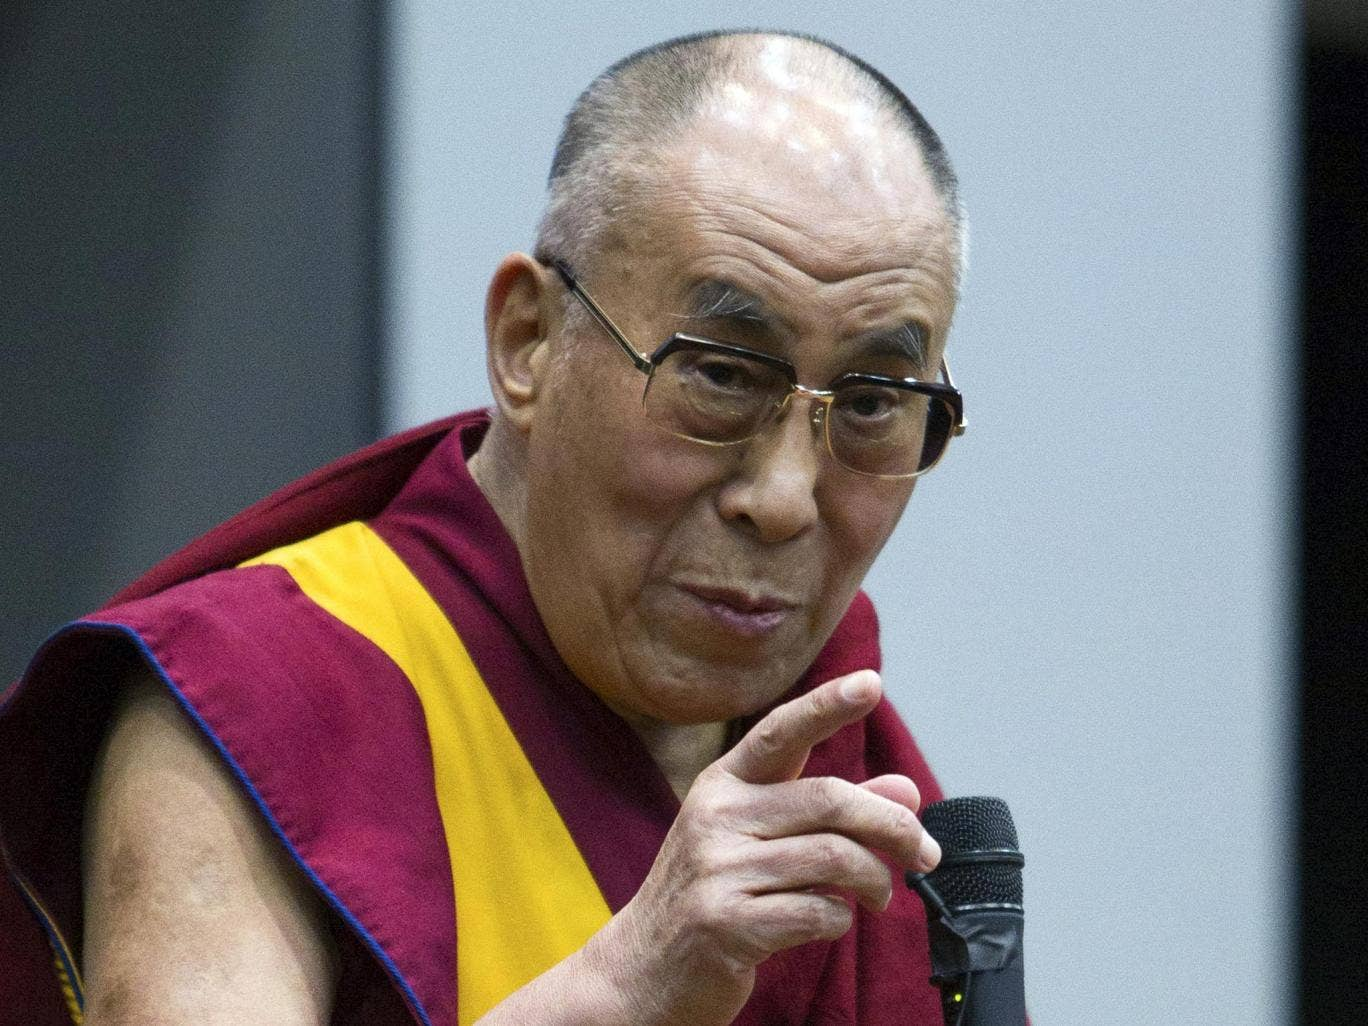 President Barack Obama has met with the with the Dalai Lama despite protests from China